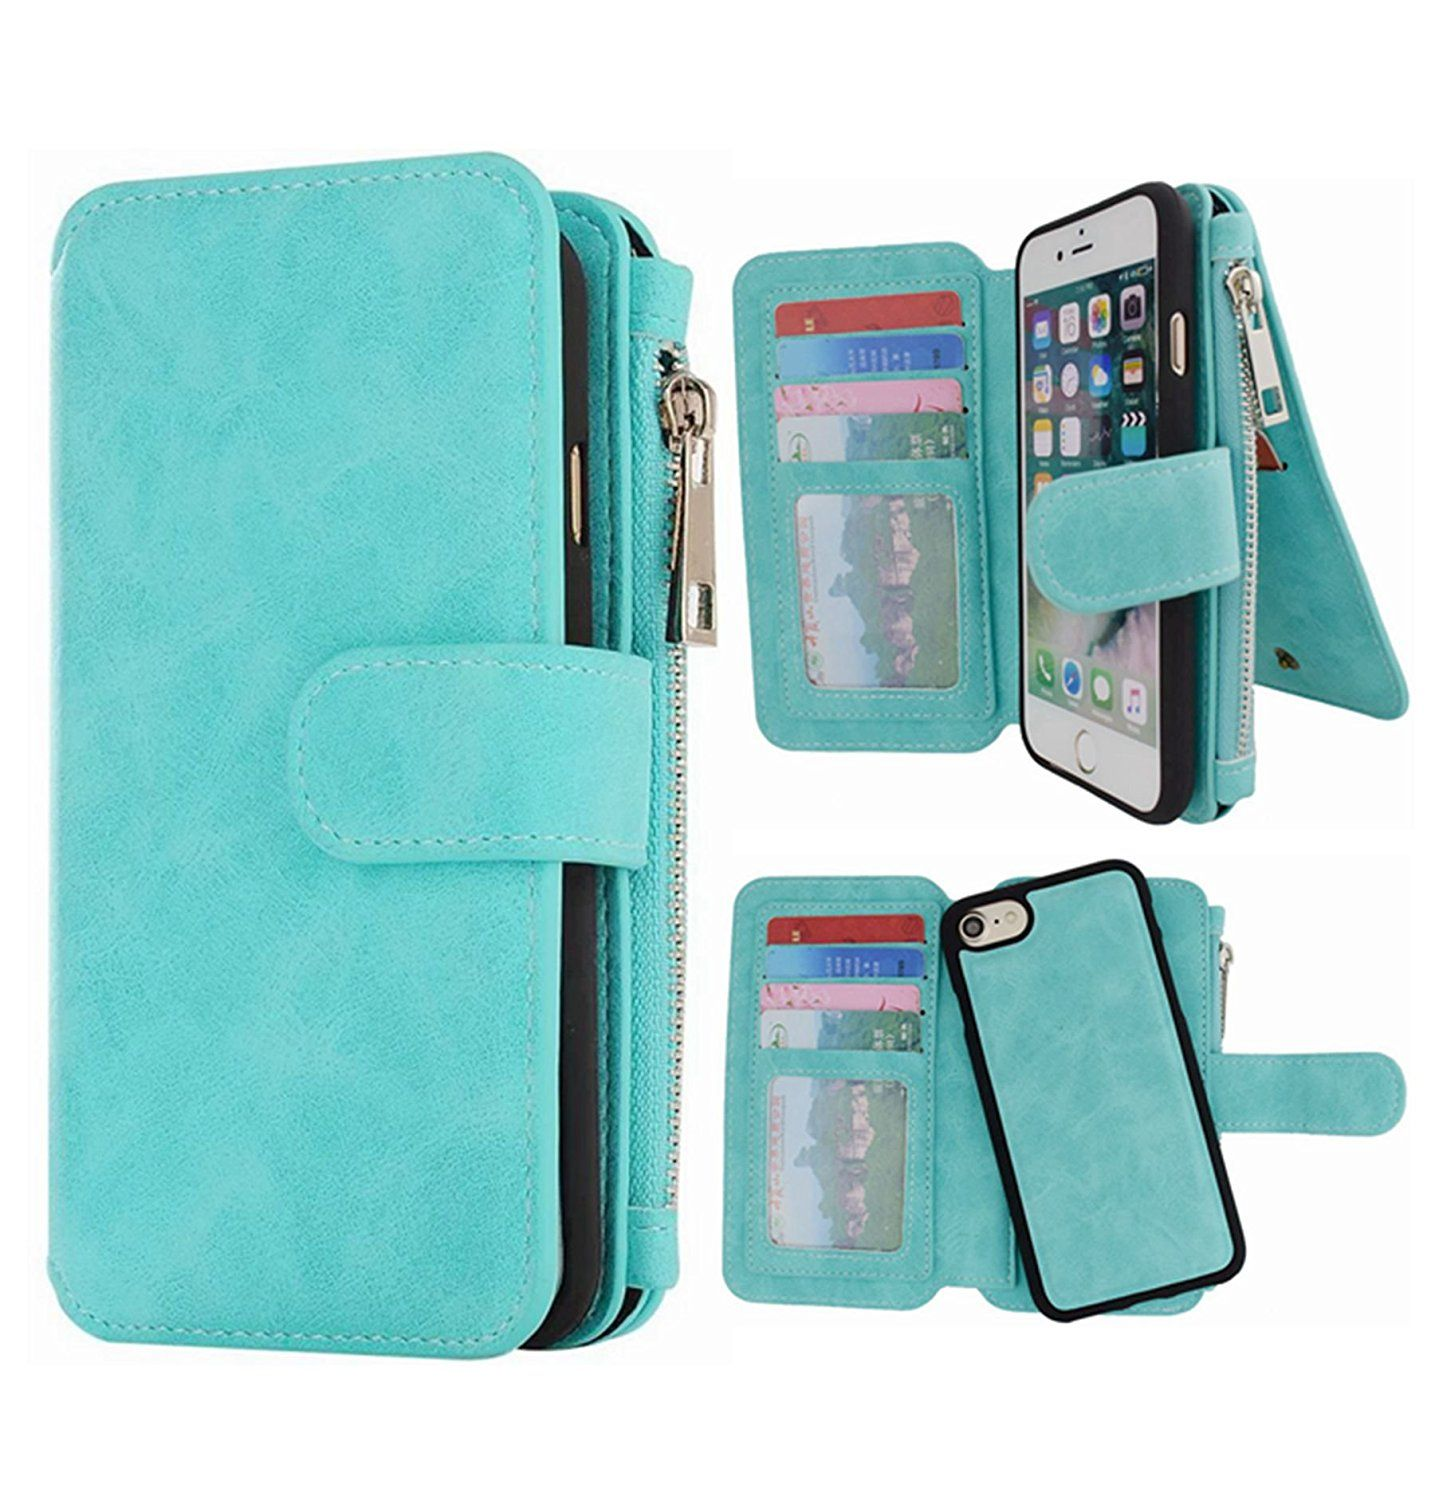 f102083709ef iPhone 8 Wallet case, iPhone 7 Leather Case,Hynice Detachable ...